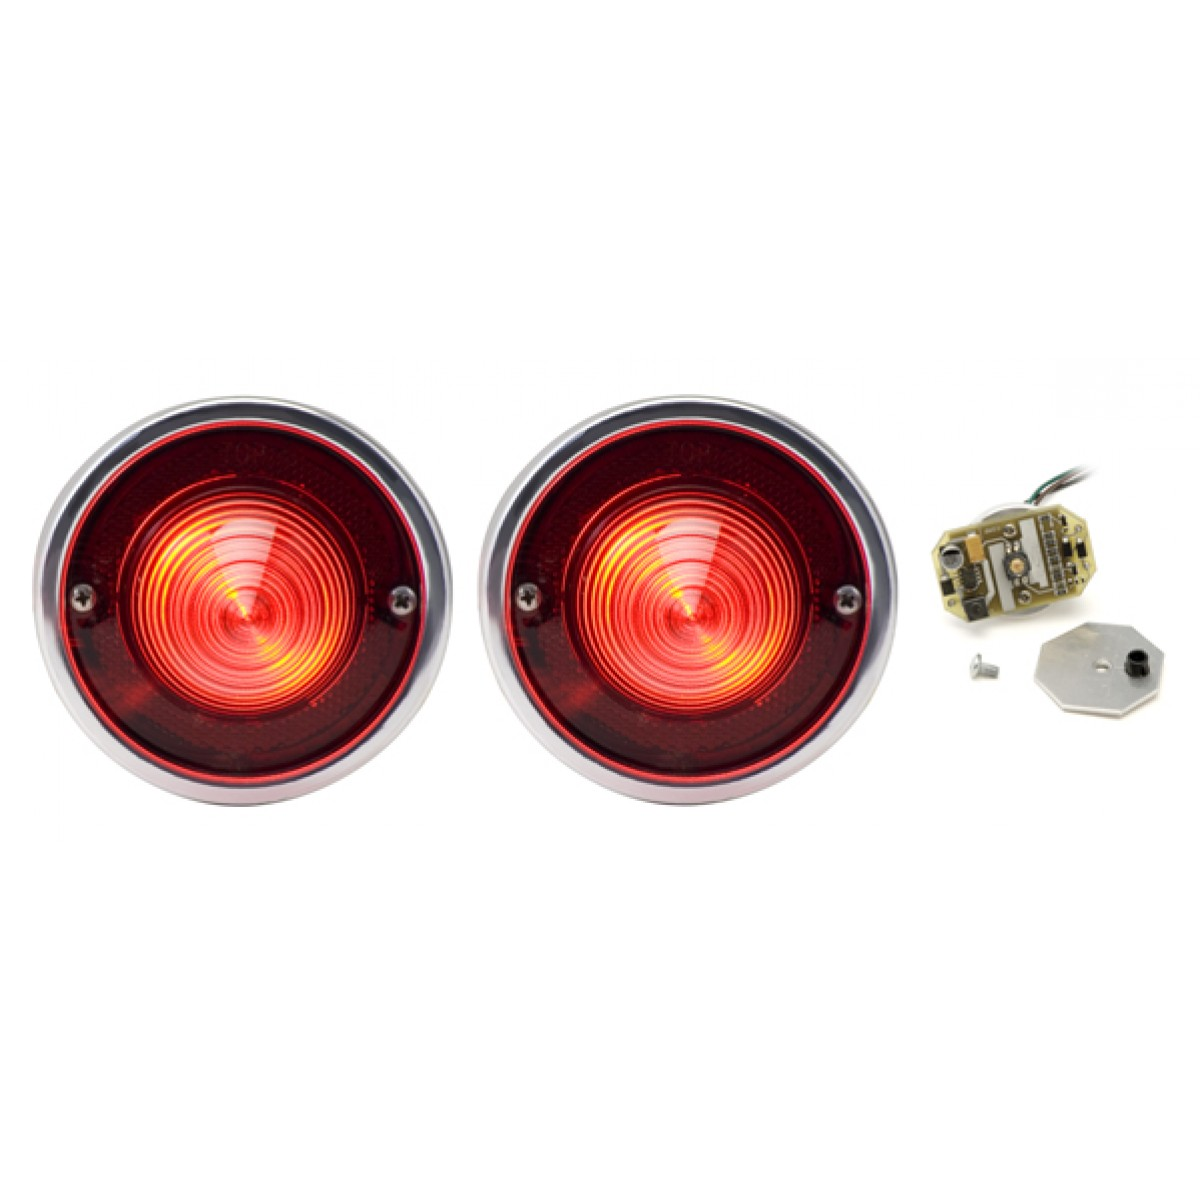 hight resolution of 1960 chevy impala bel air biscayne led tail lights dakota digital lat nr161